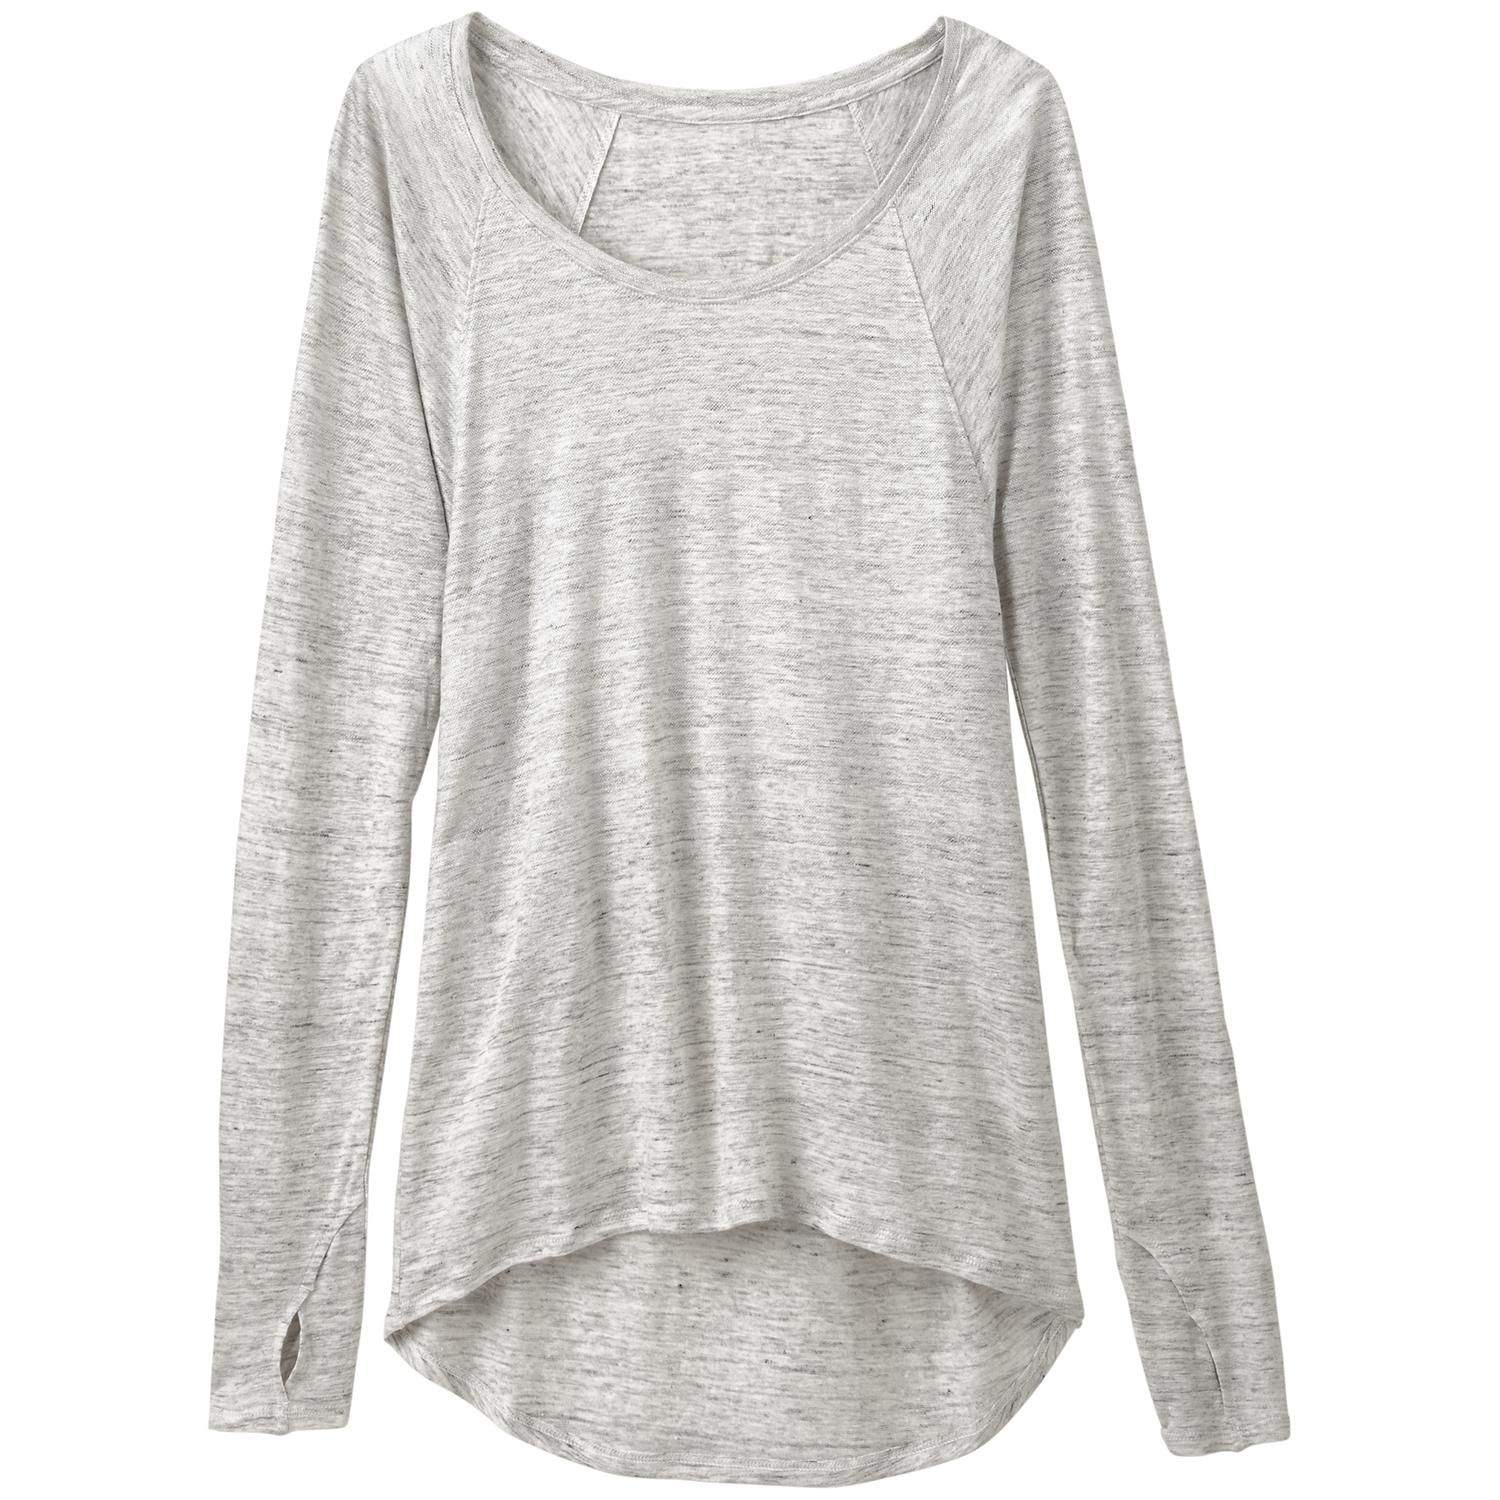 Shiva top from Athleta for post yoga